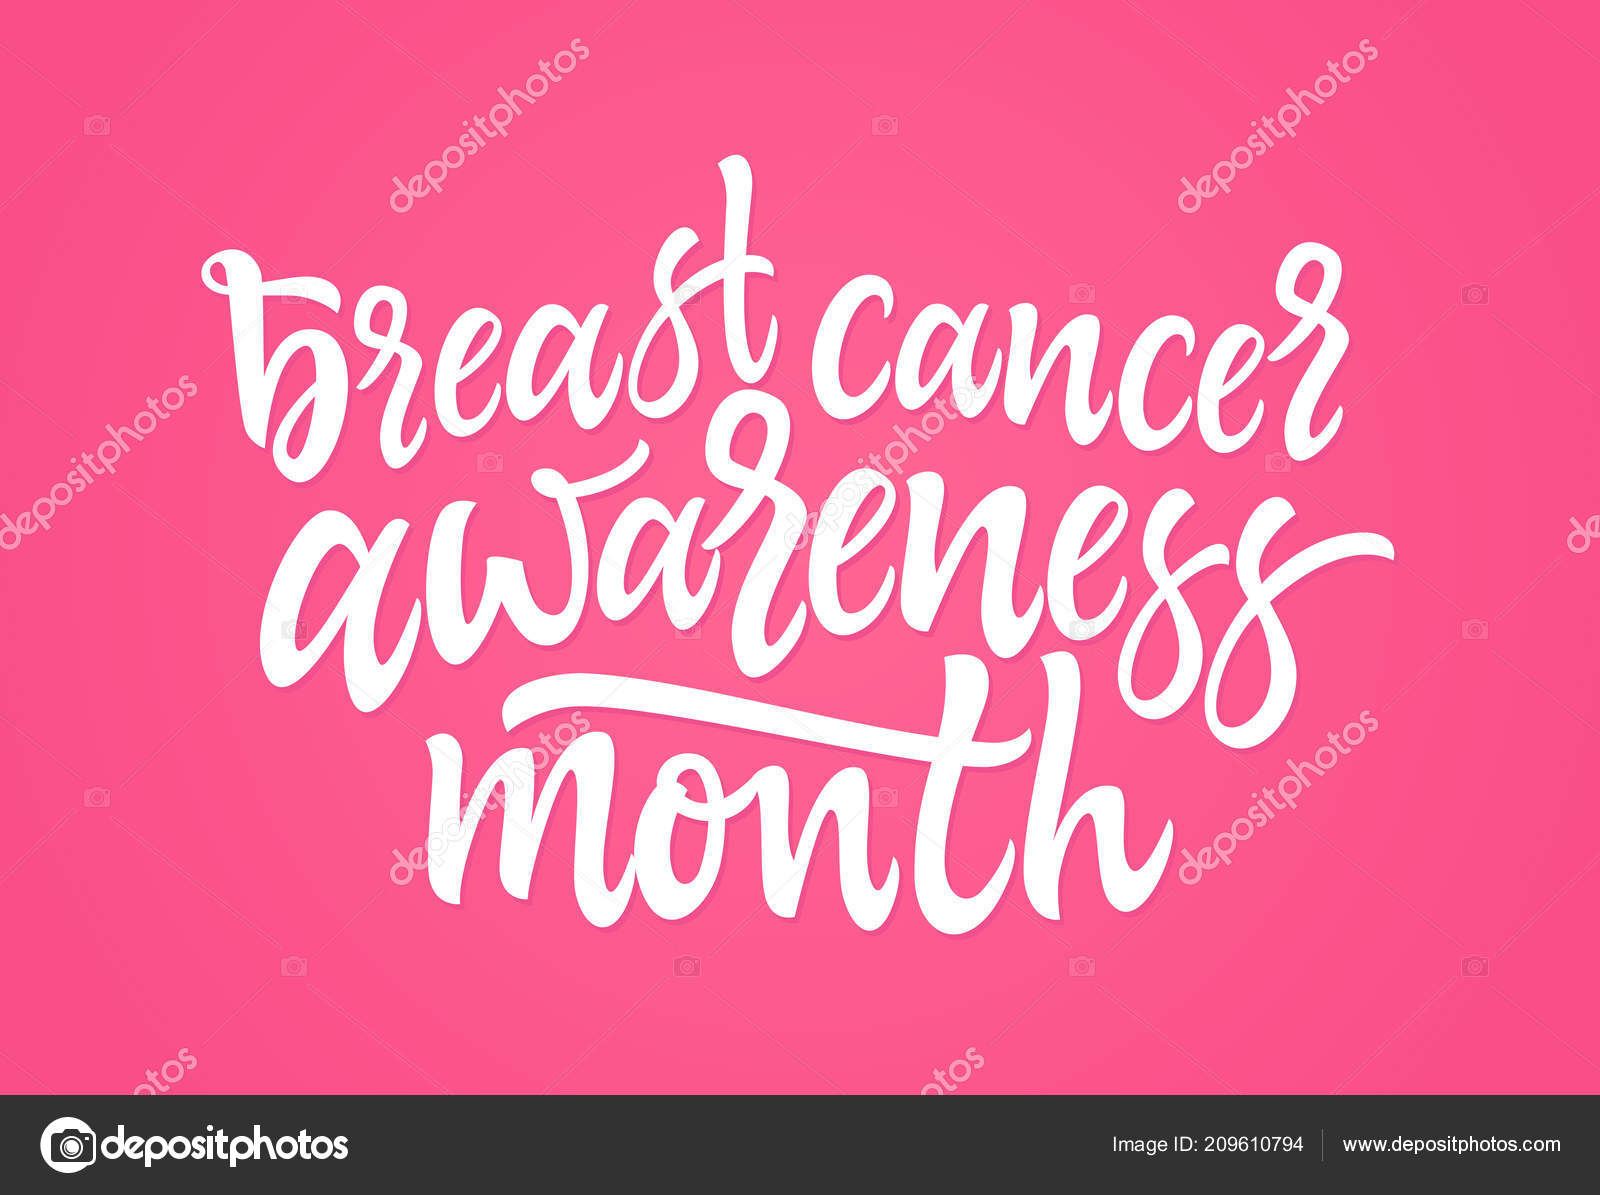 Breast cancer and social movement